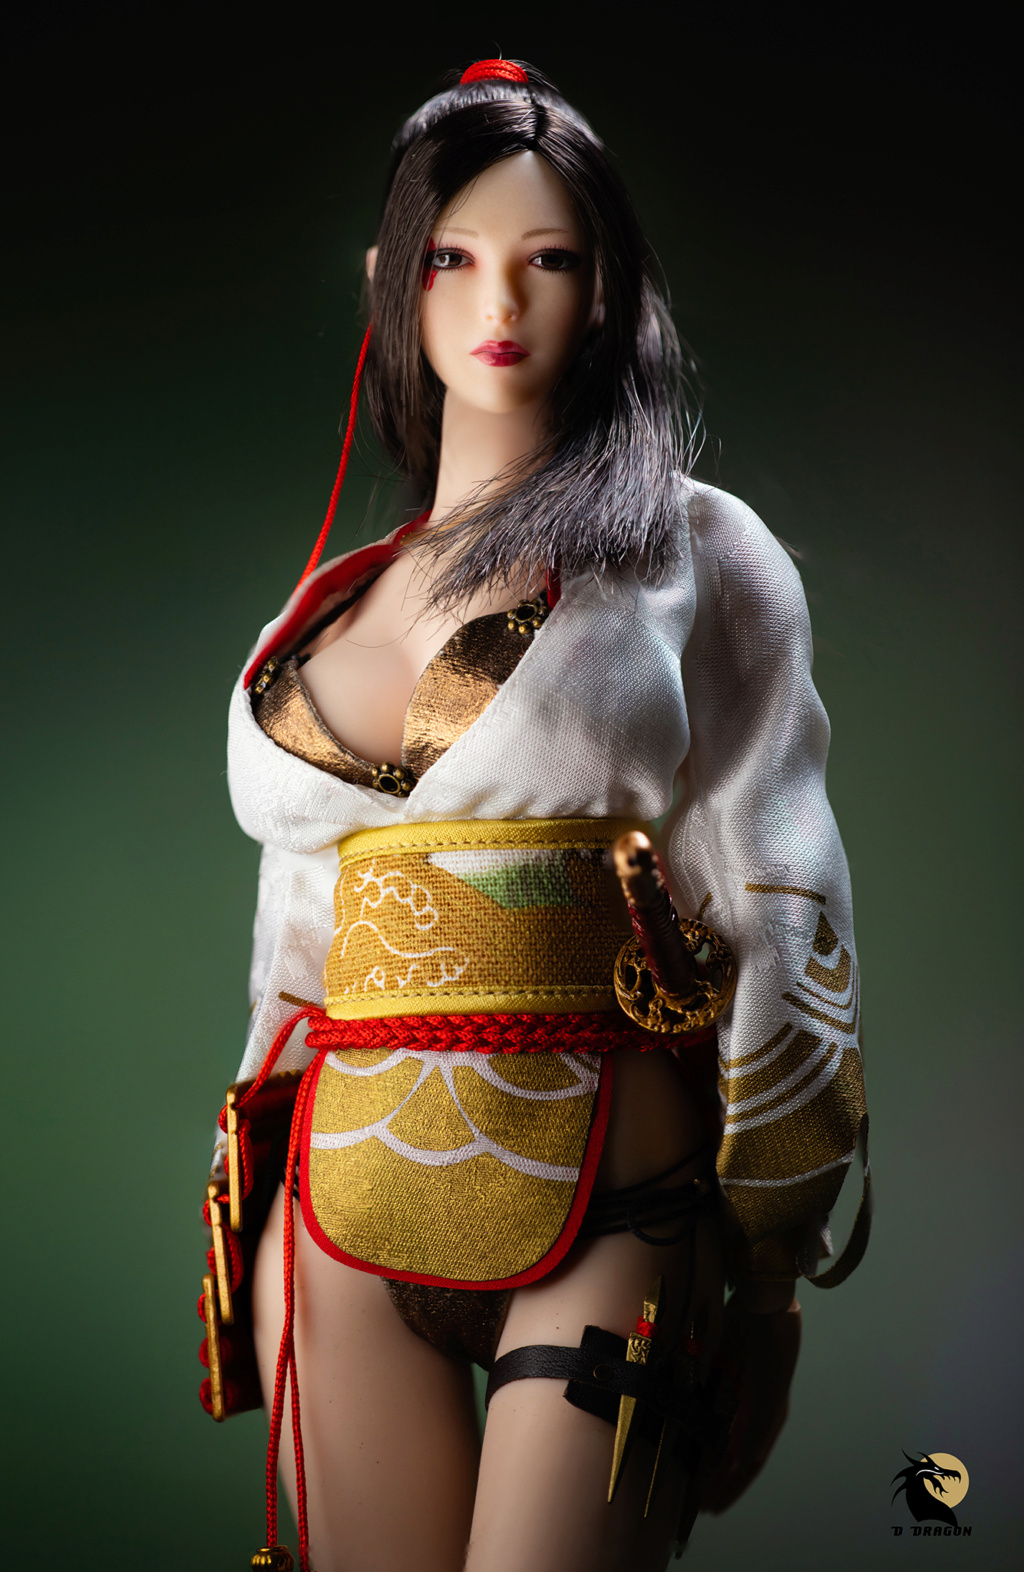 VeryCool - NEW PRODUCT: Verycool VCF2039 1/6 Scale Japanese Heroine - Nōhime Nohime18